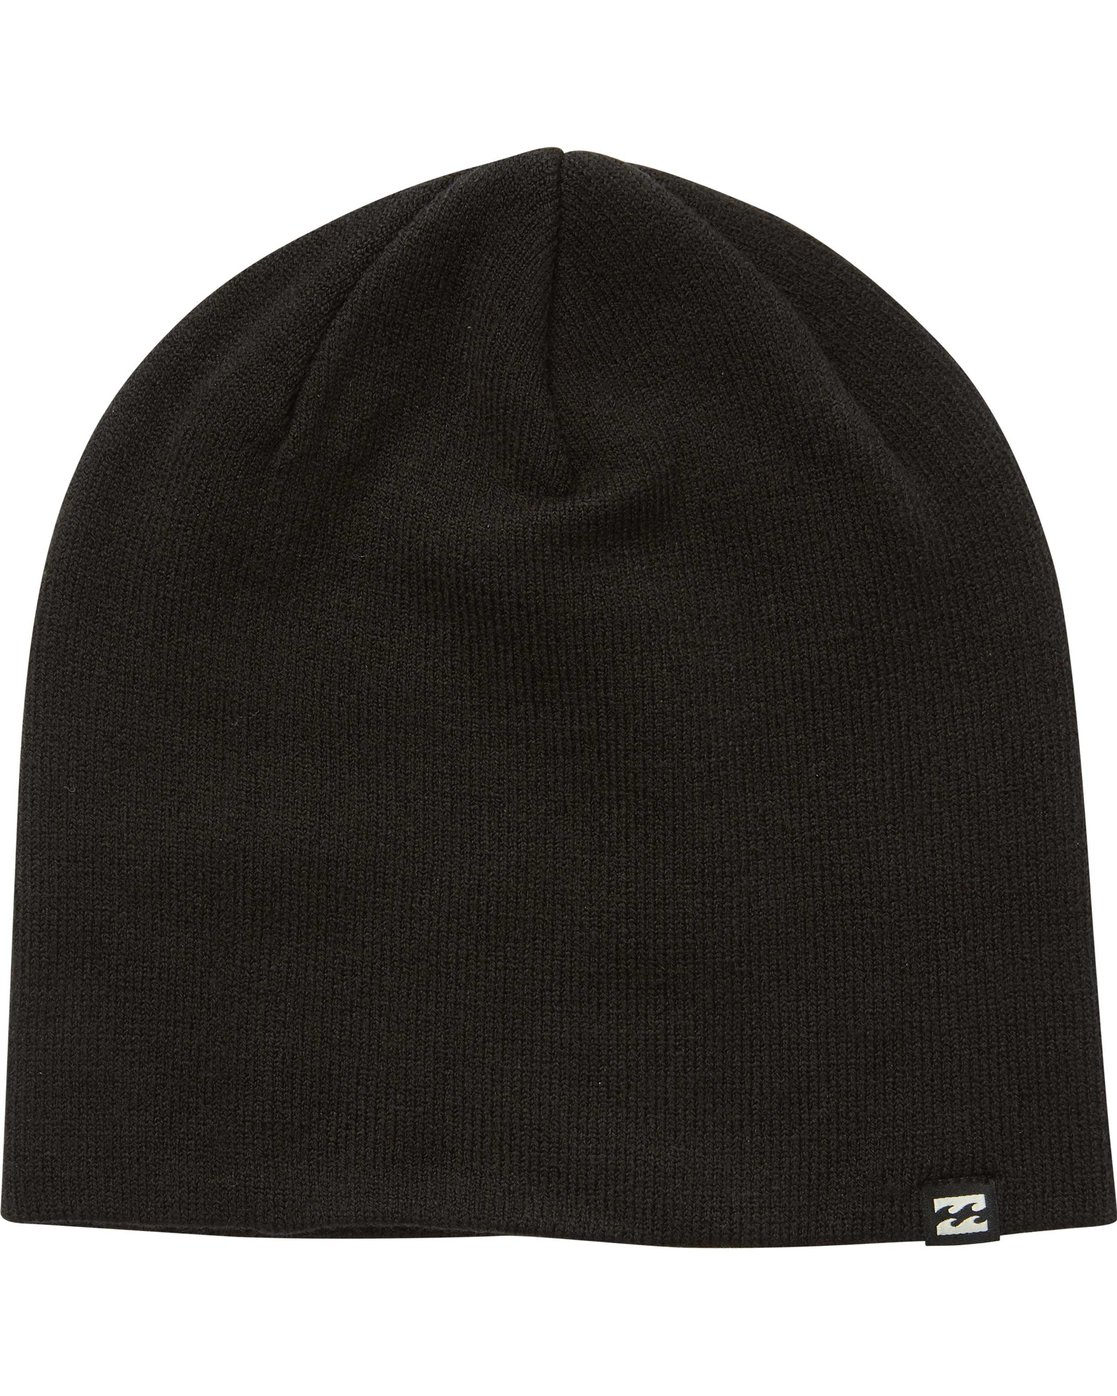 5962d8fa989 0 All Day Solid Beanie MABNQBAD Billabong